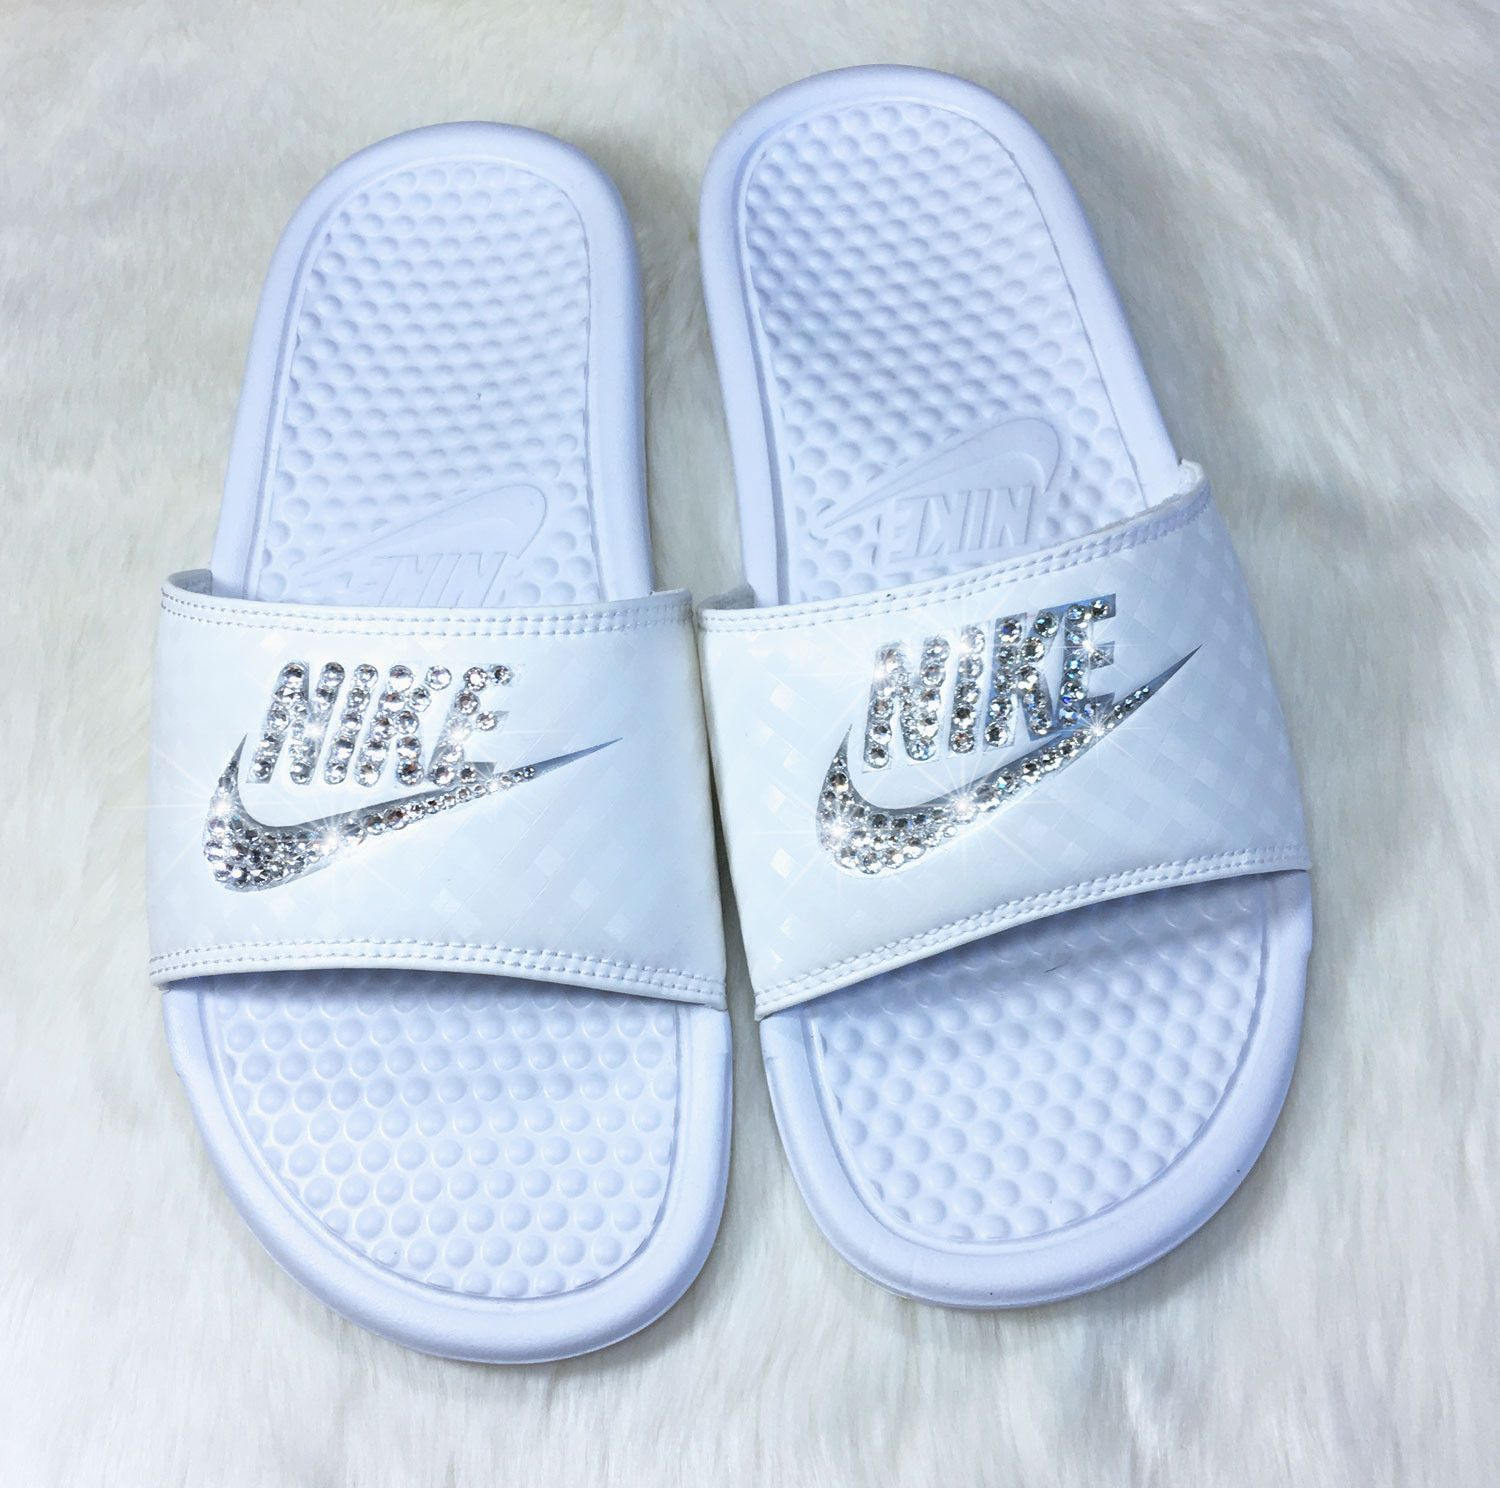 Slide into Summer with these Sparkling Nike Slide Sandals! Custom hand  jeweled with genuine Swarovski Crystals f74a3992c